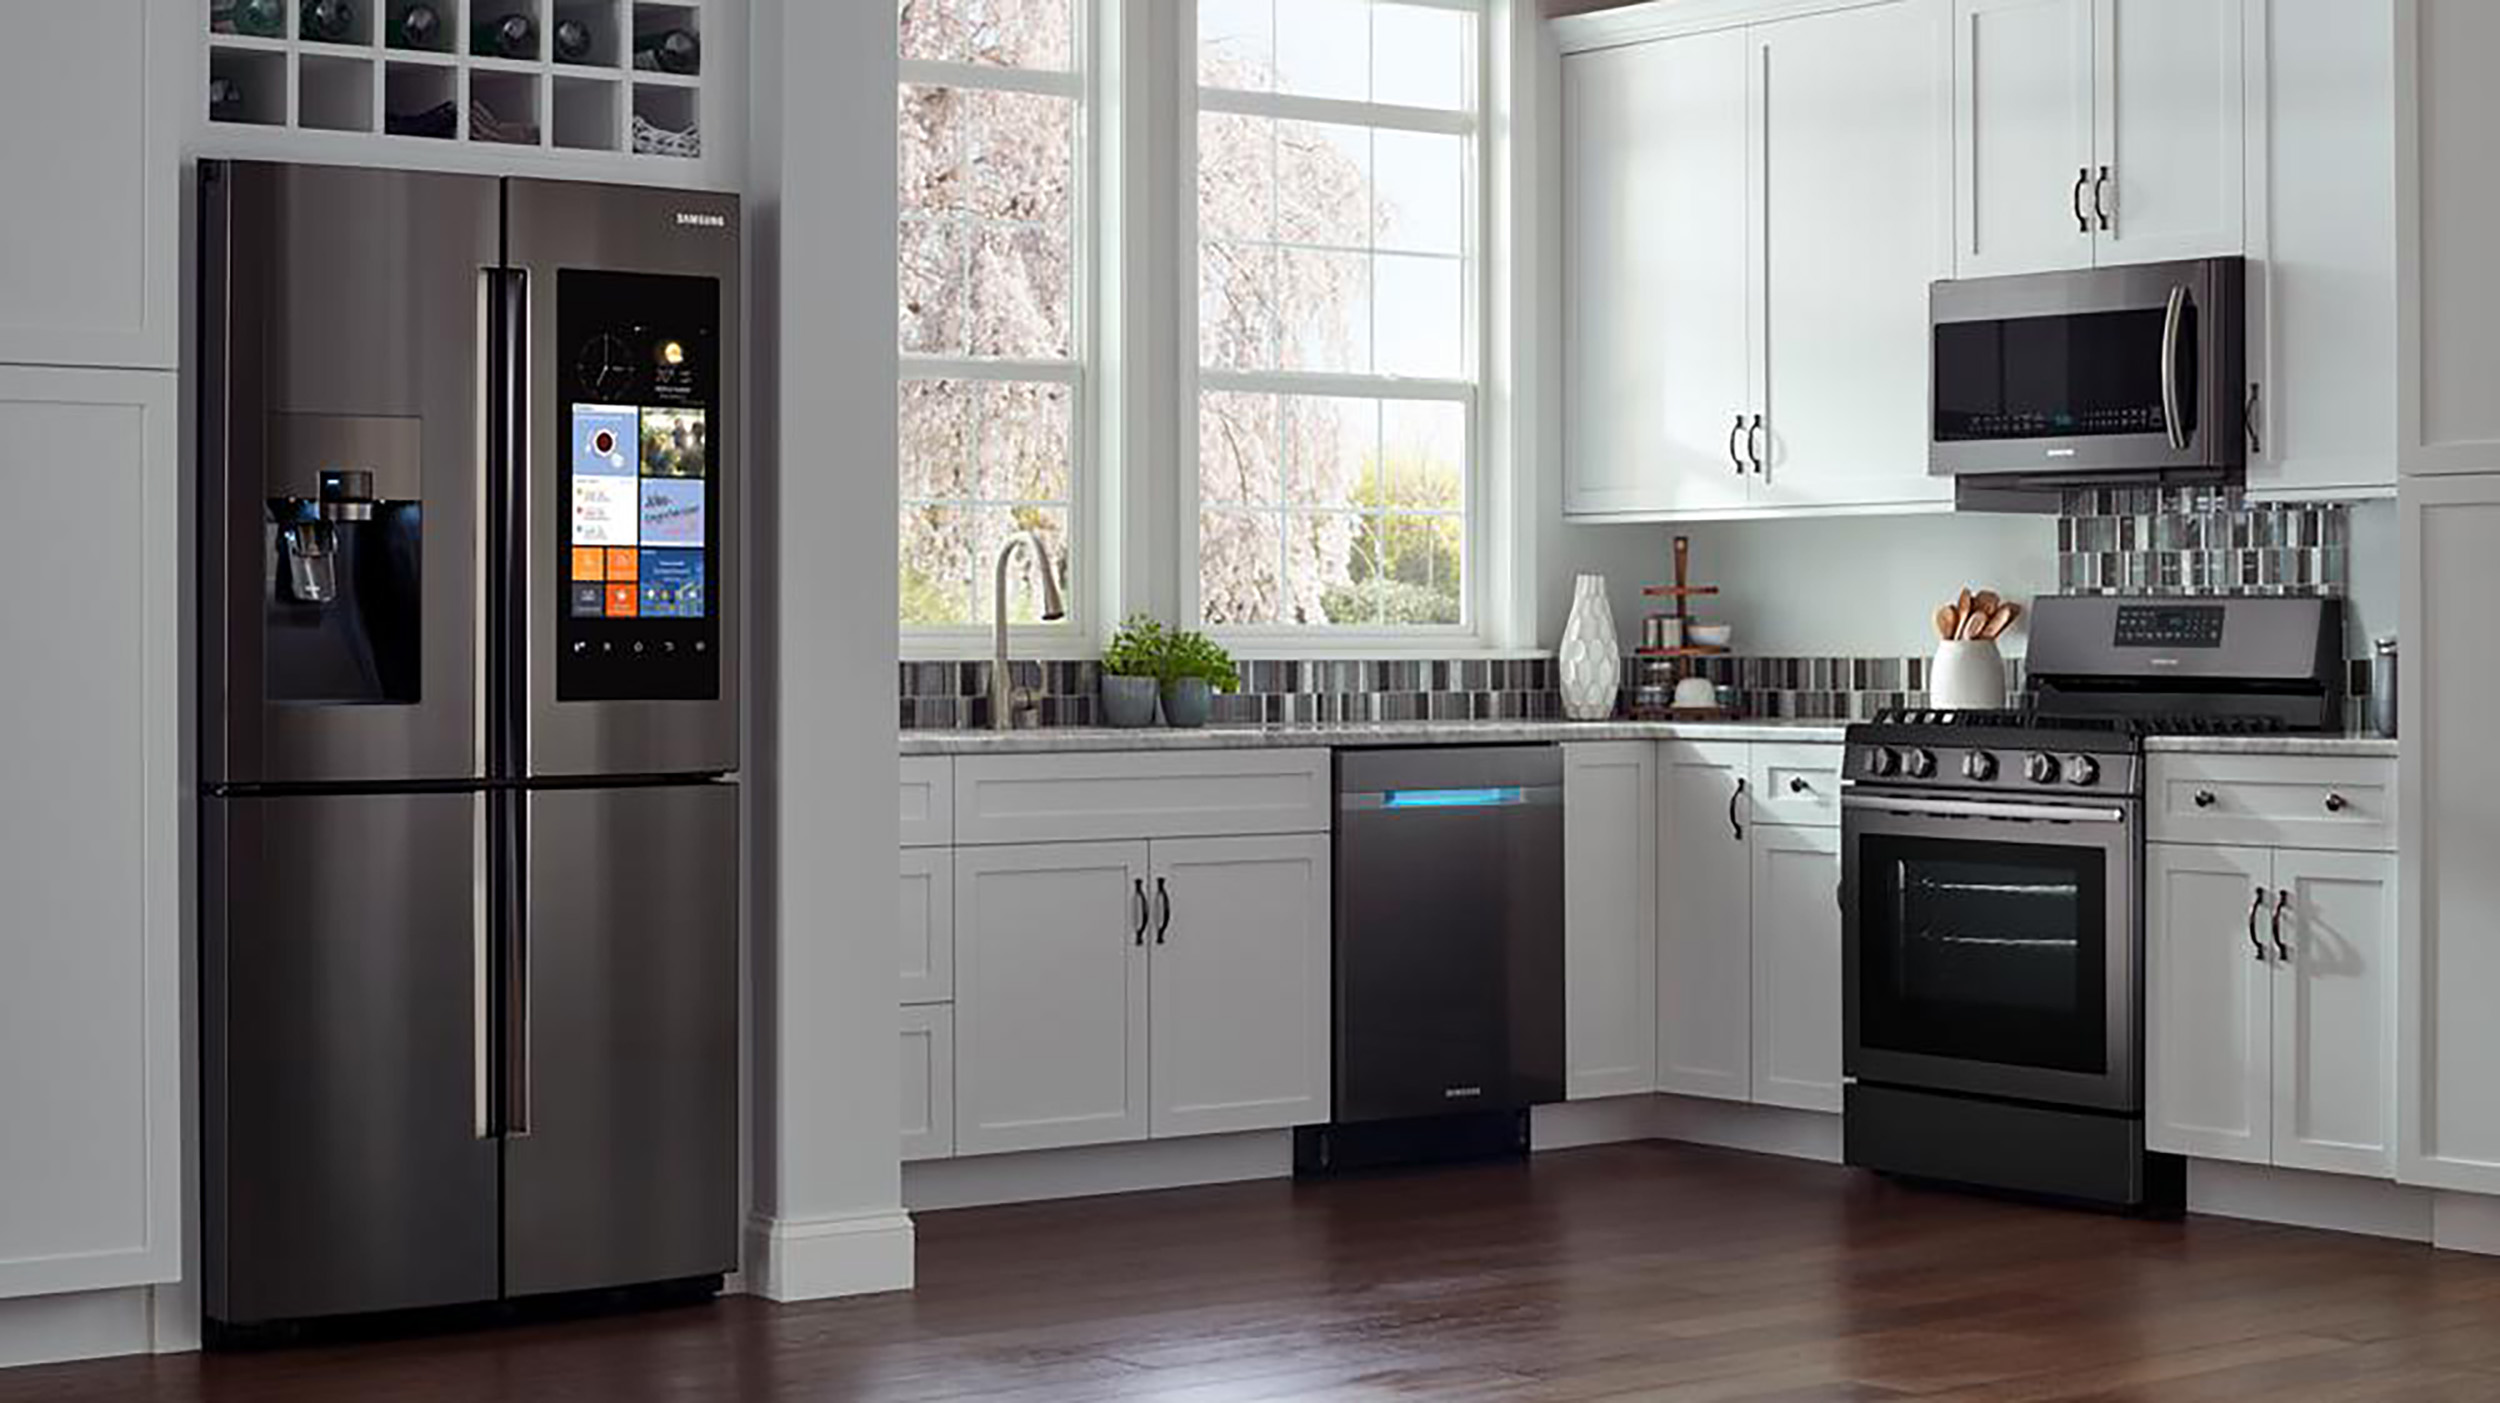 Samsung Sale Ovens And Refrigerators For One Day Only At The Home Depot Cnn Underscored